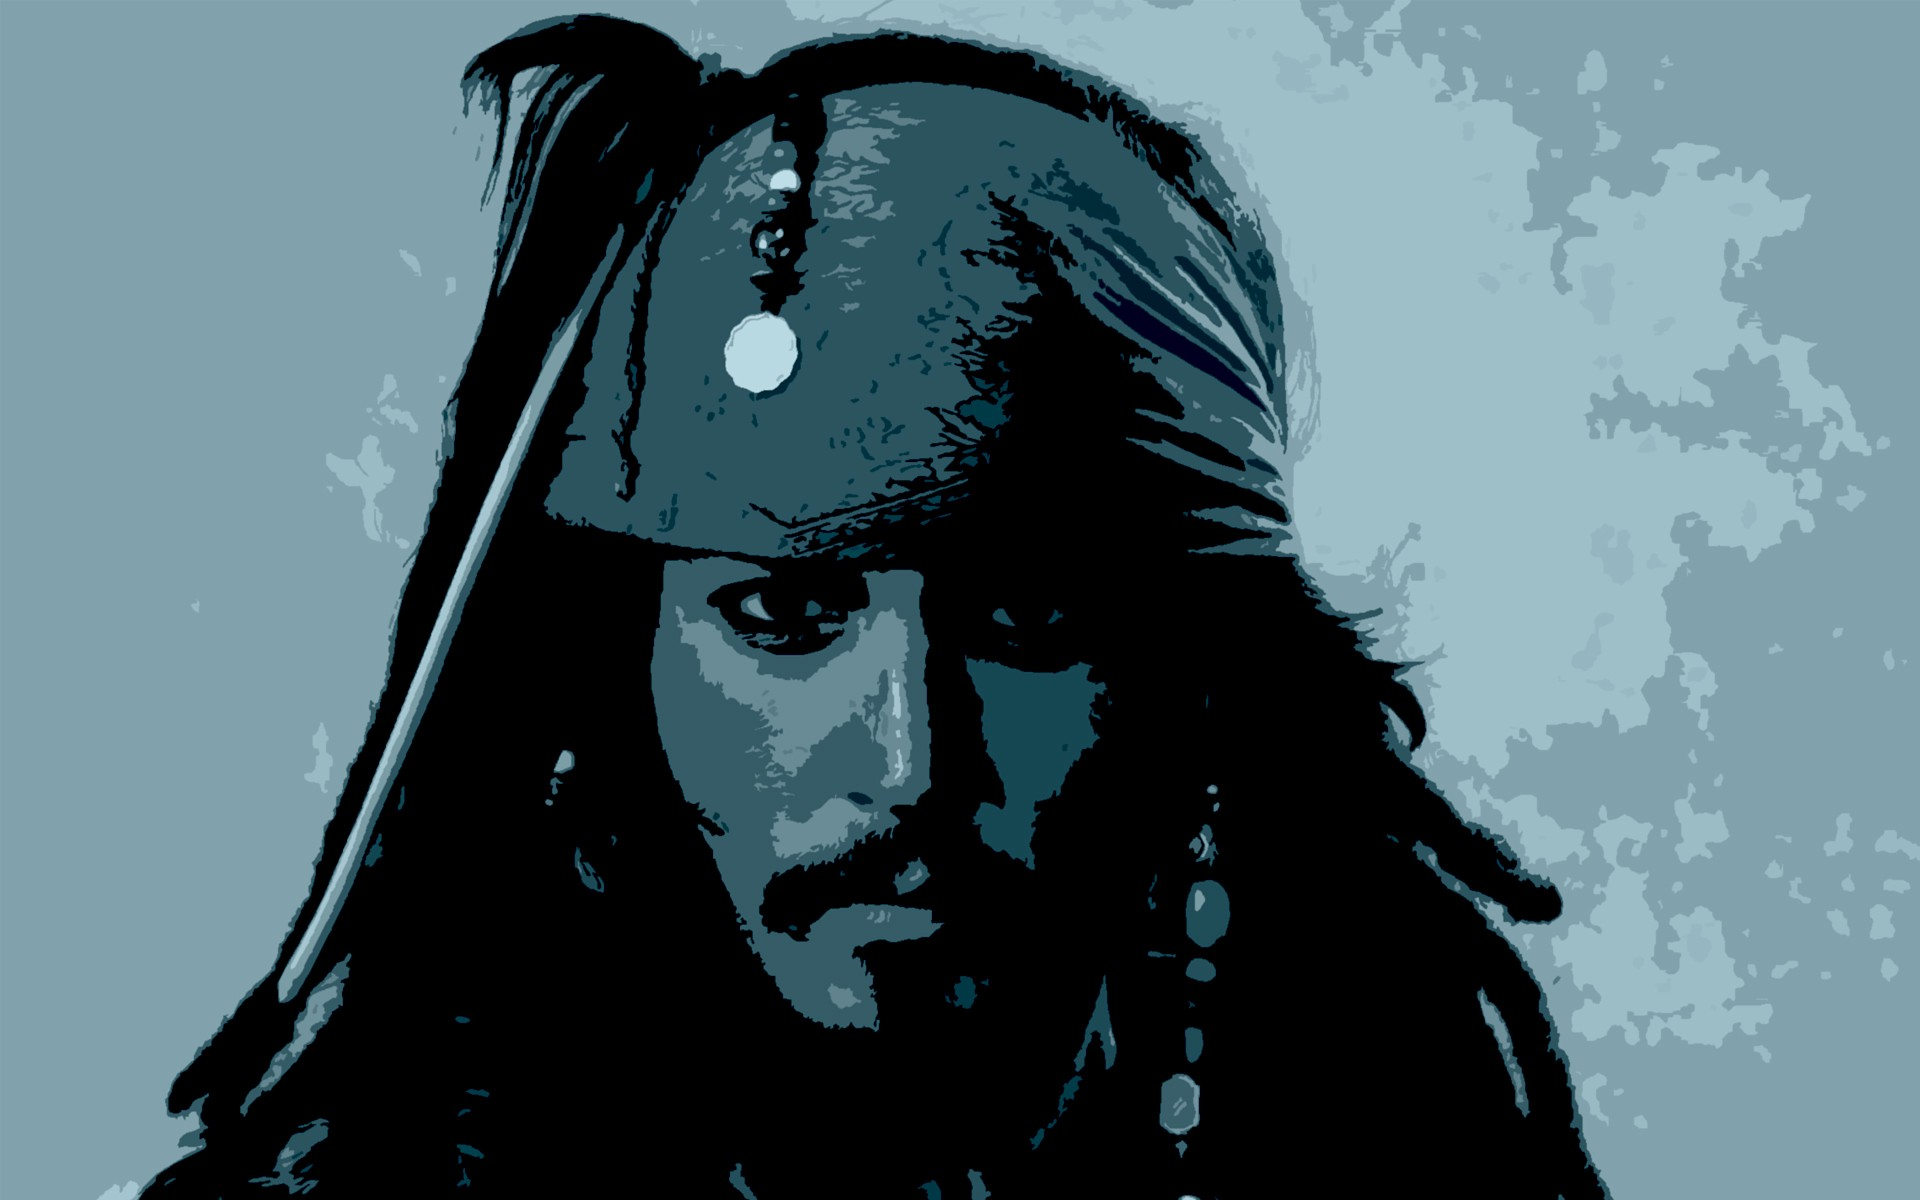 jack sparrow character analysis